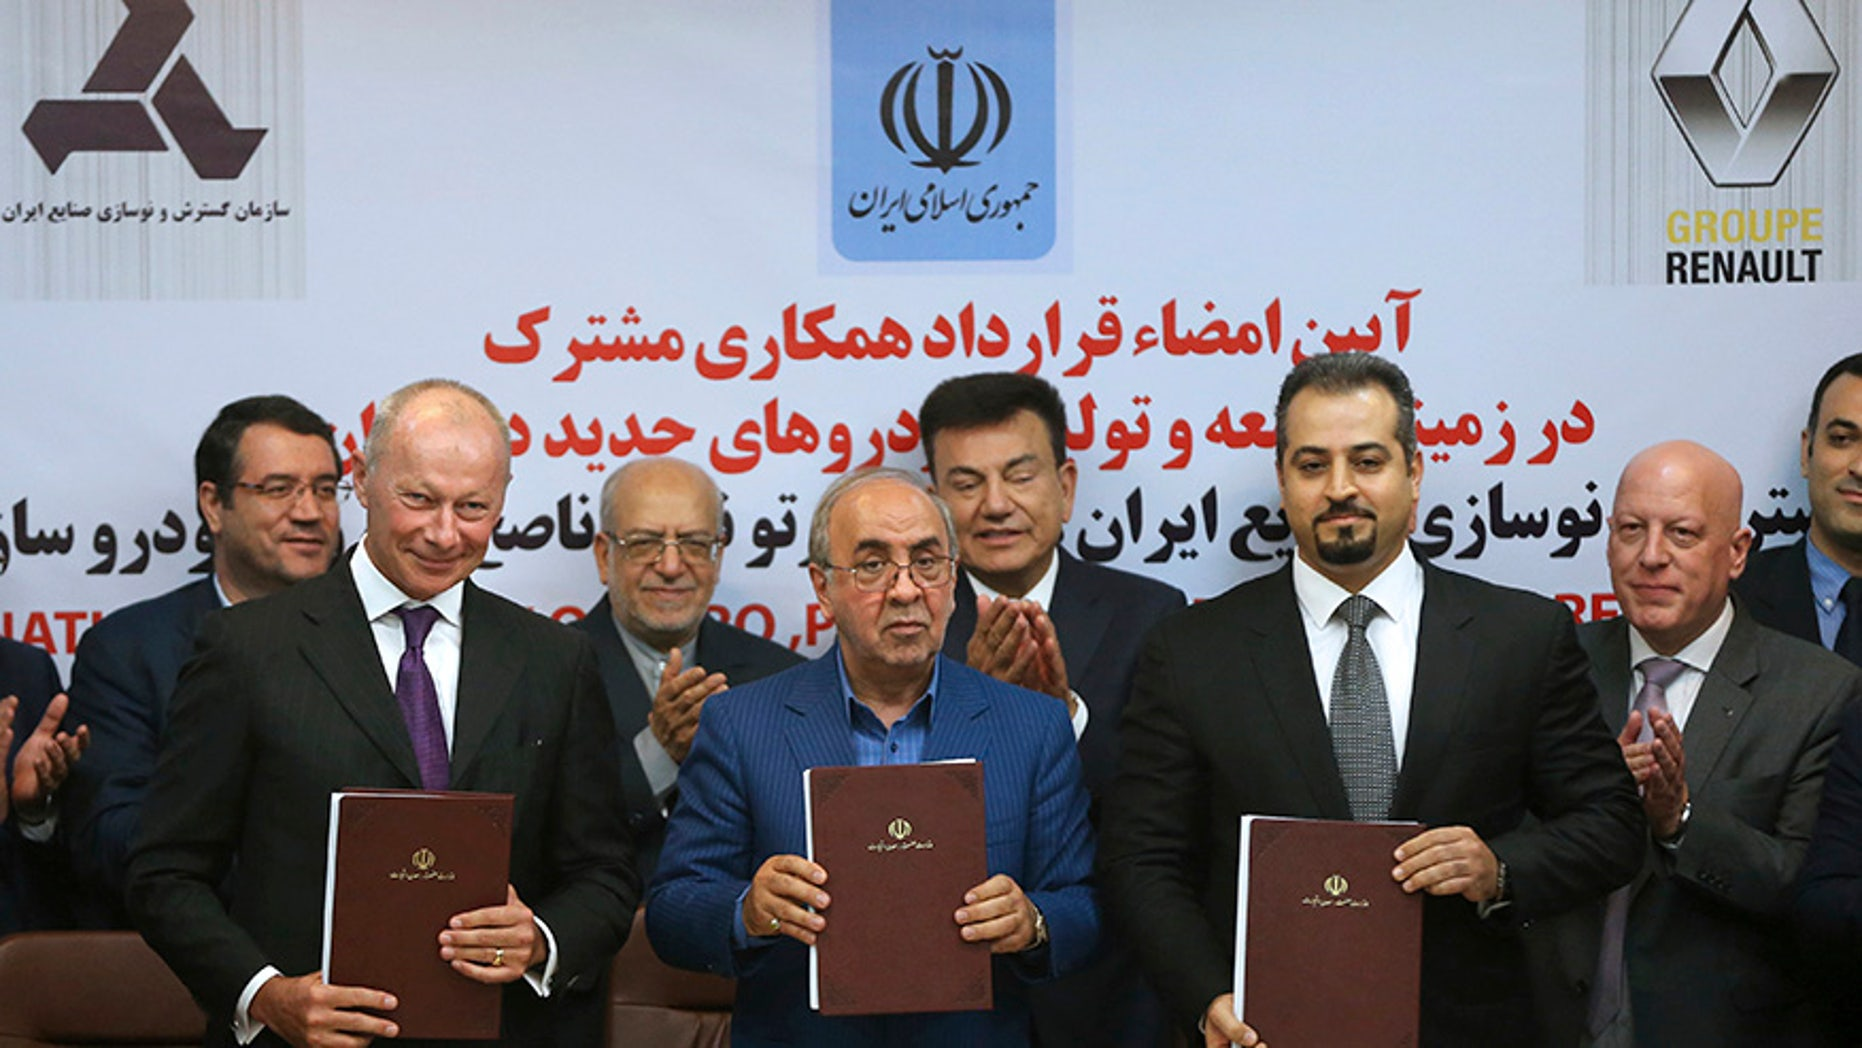 Chief Competitive Officer of Groupe Renault Thierry Bolloré, left, Chairman of Industrial Development and Renovation Oraganization of Iran, IDRO, Mansour Moazami, center, and Negin Group CEO Kourosh Morshed Solouk join shows documents to media after signing a deal in Tehran, Iran, Monday, Aug. 7, 2017. Iran signed the country's biggest-ever car deal with French multinational automobile manufacturer Groupe Renault on Monday to produce 150,000 cars, beginning in 2018. (AP Photo/Vahid Salemi)